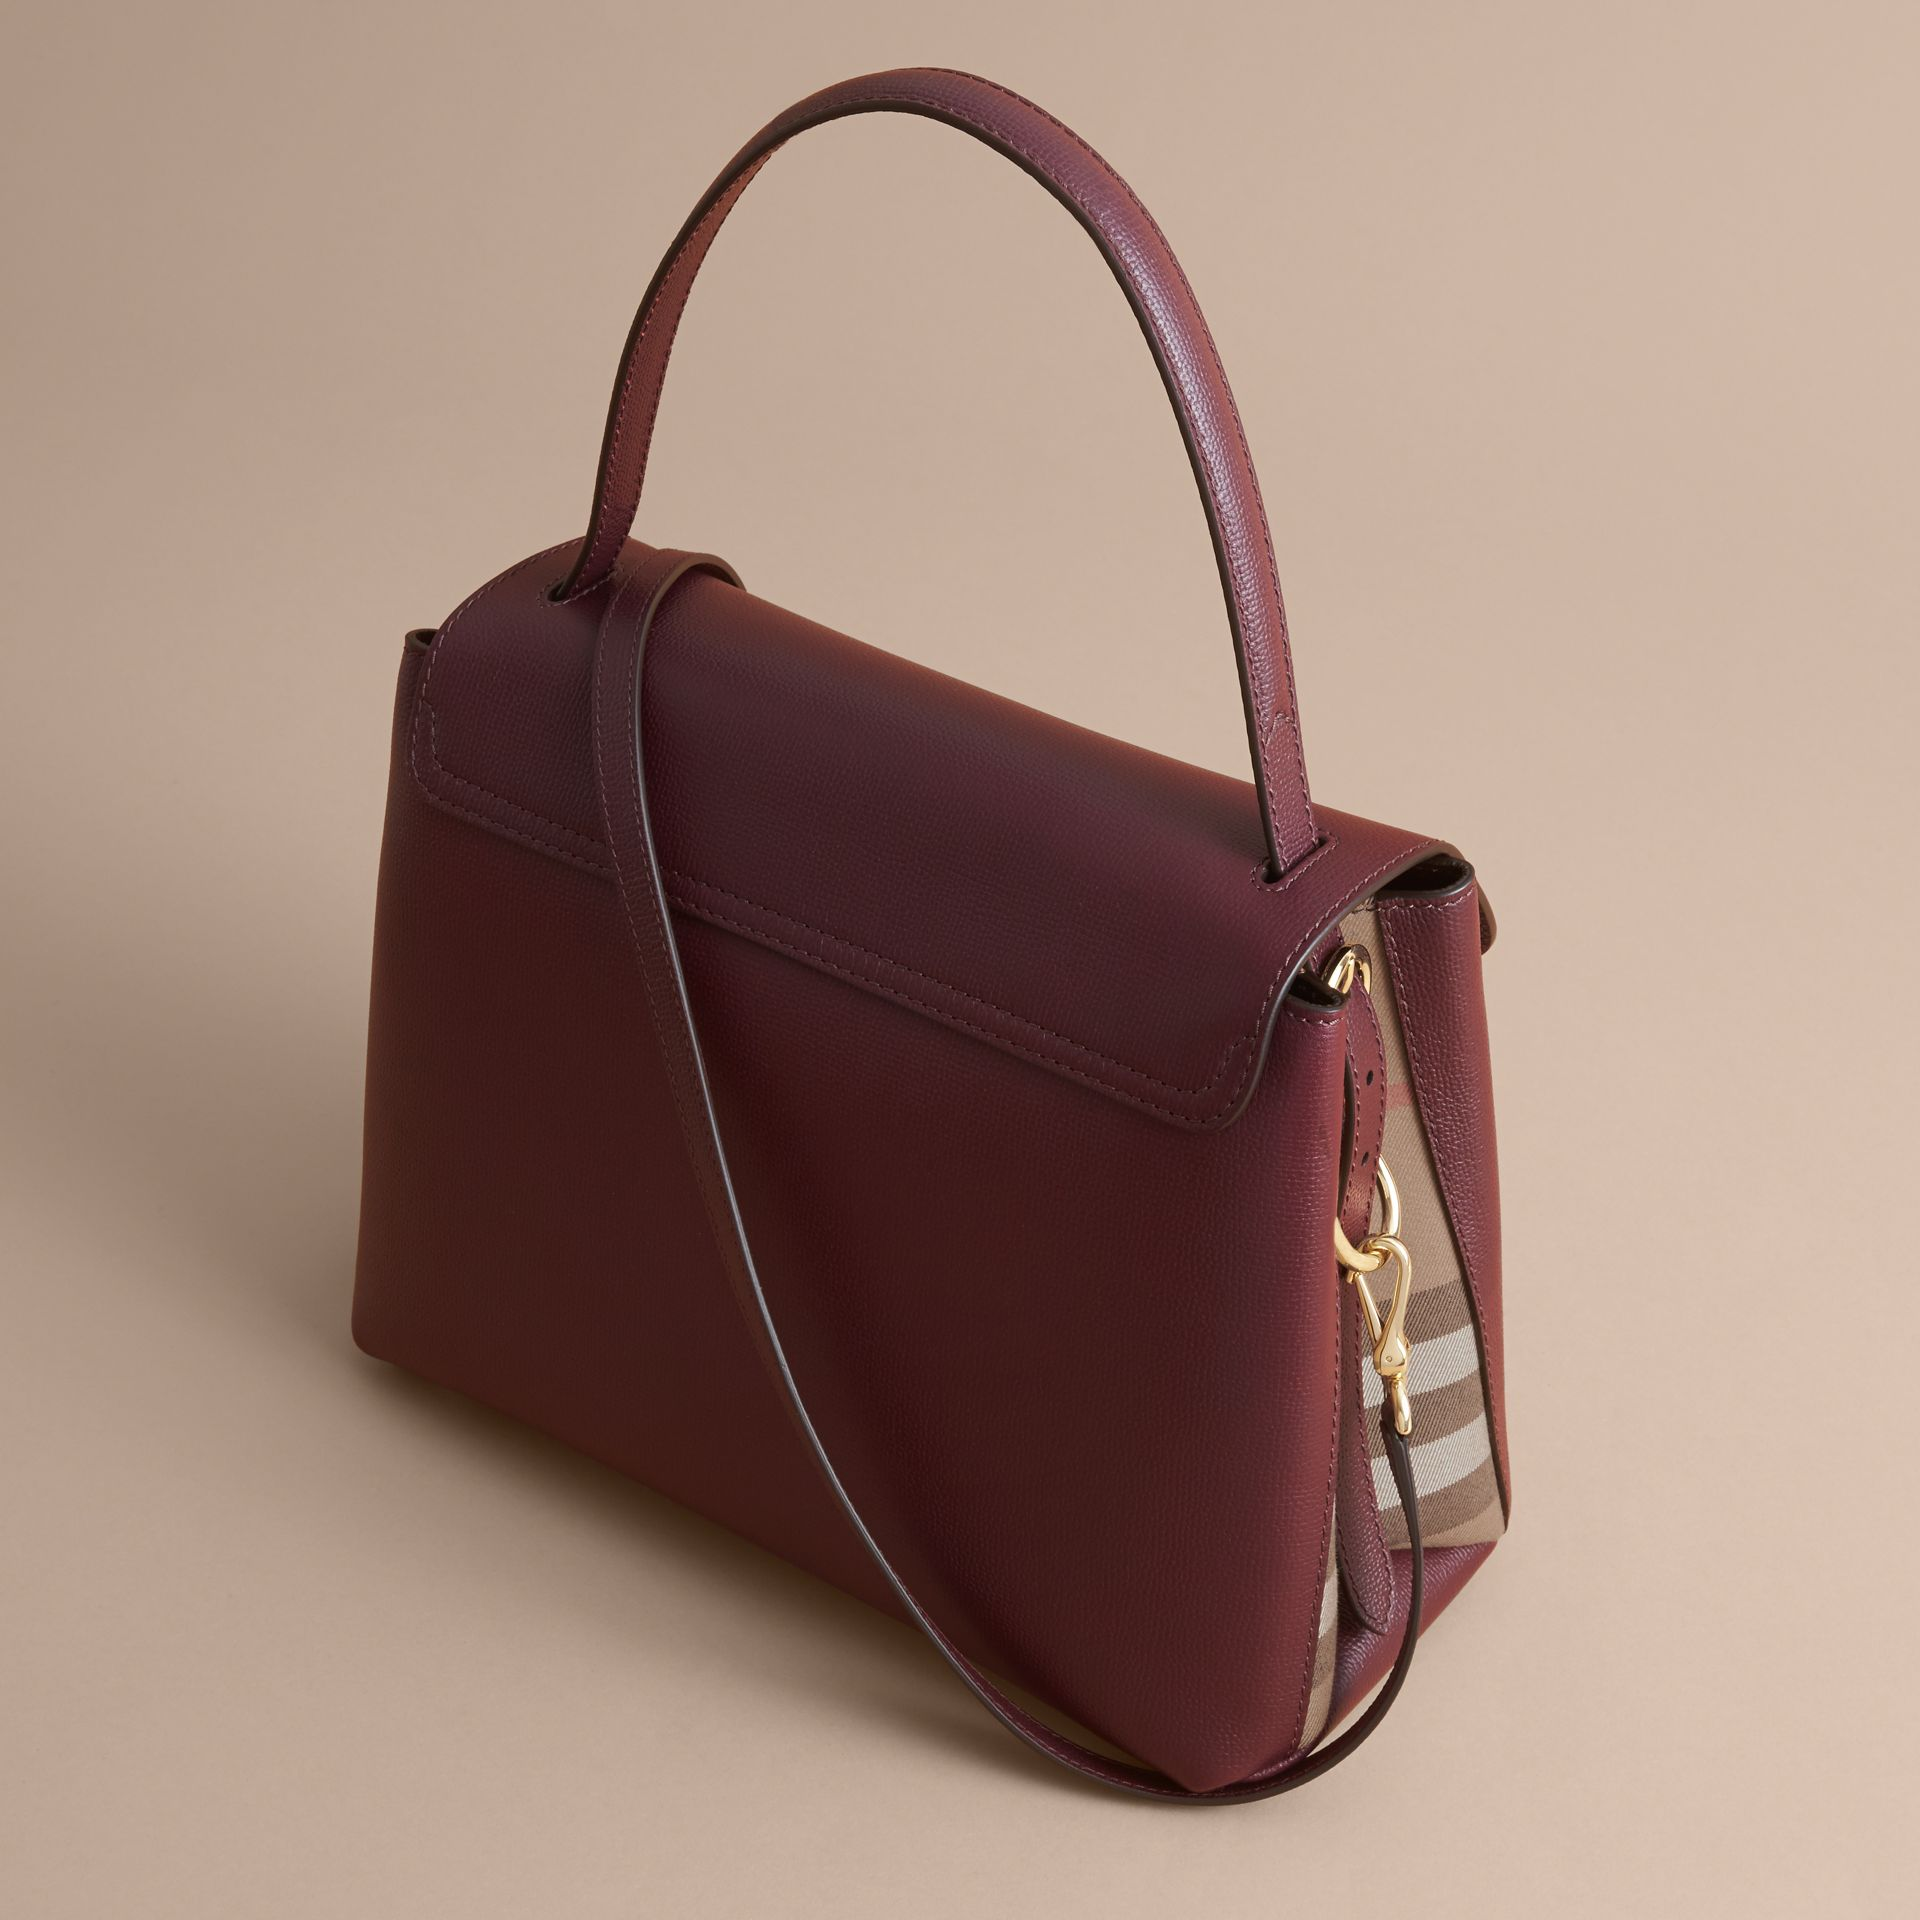 Medium Grainy Leather and House Check Tote Bag in Mahogany Red - Women | Burberry United Kingdom - gallery image 4